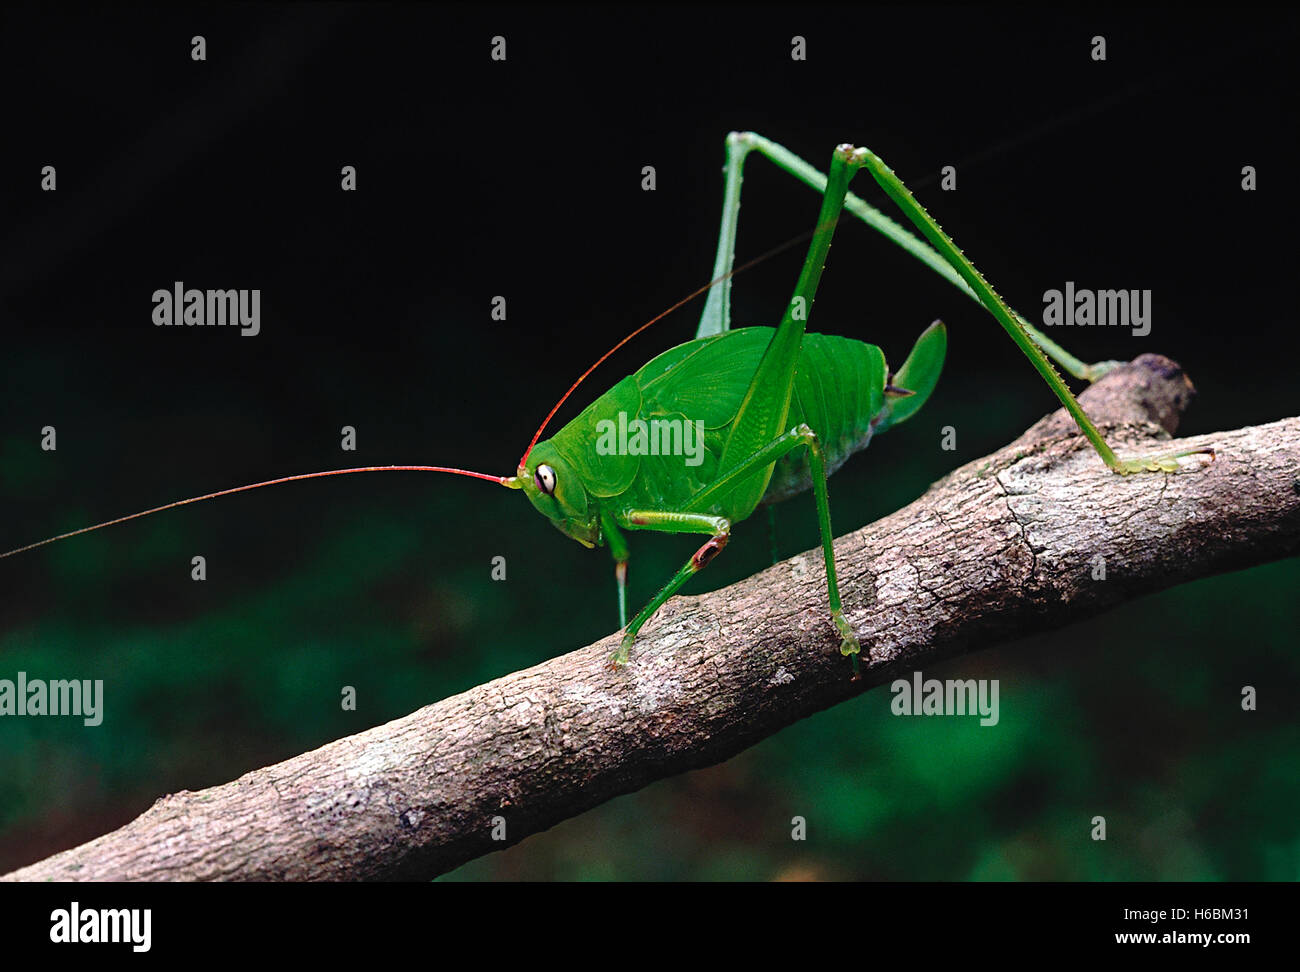 Bush cricket. A cricket with extremely long antennae and hind legs. The body colour blends in well with the greenery - Stock Image